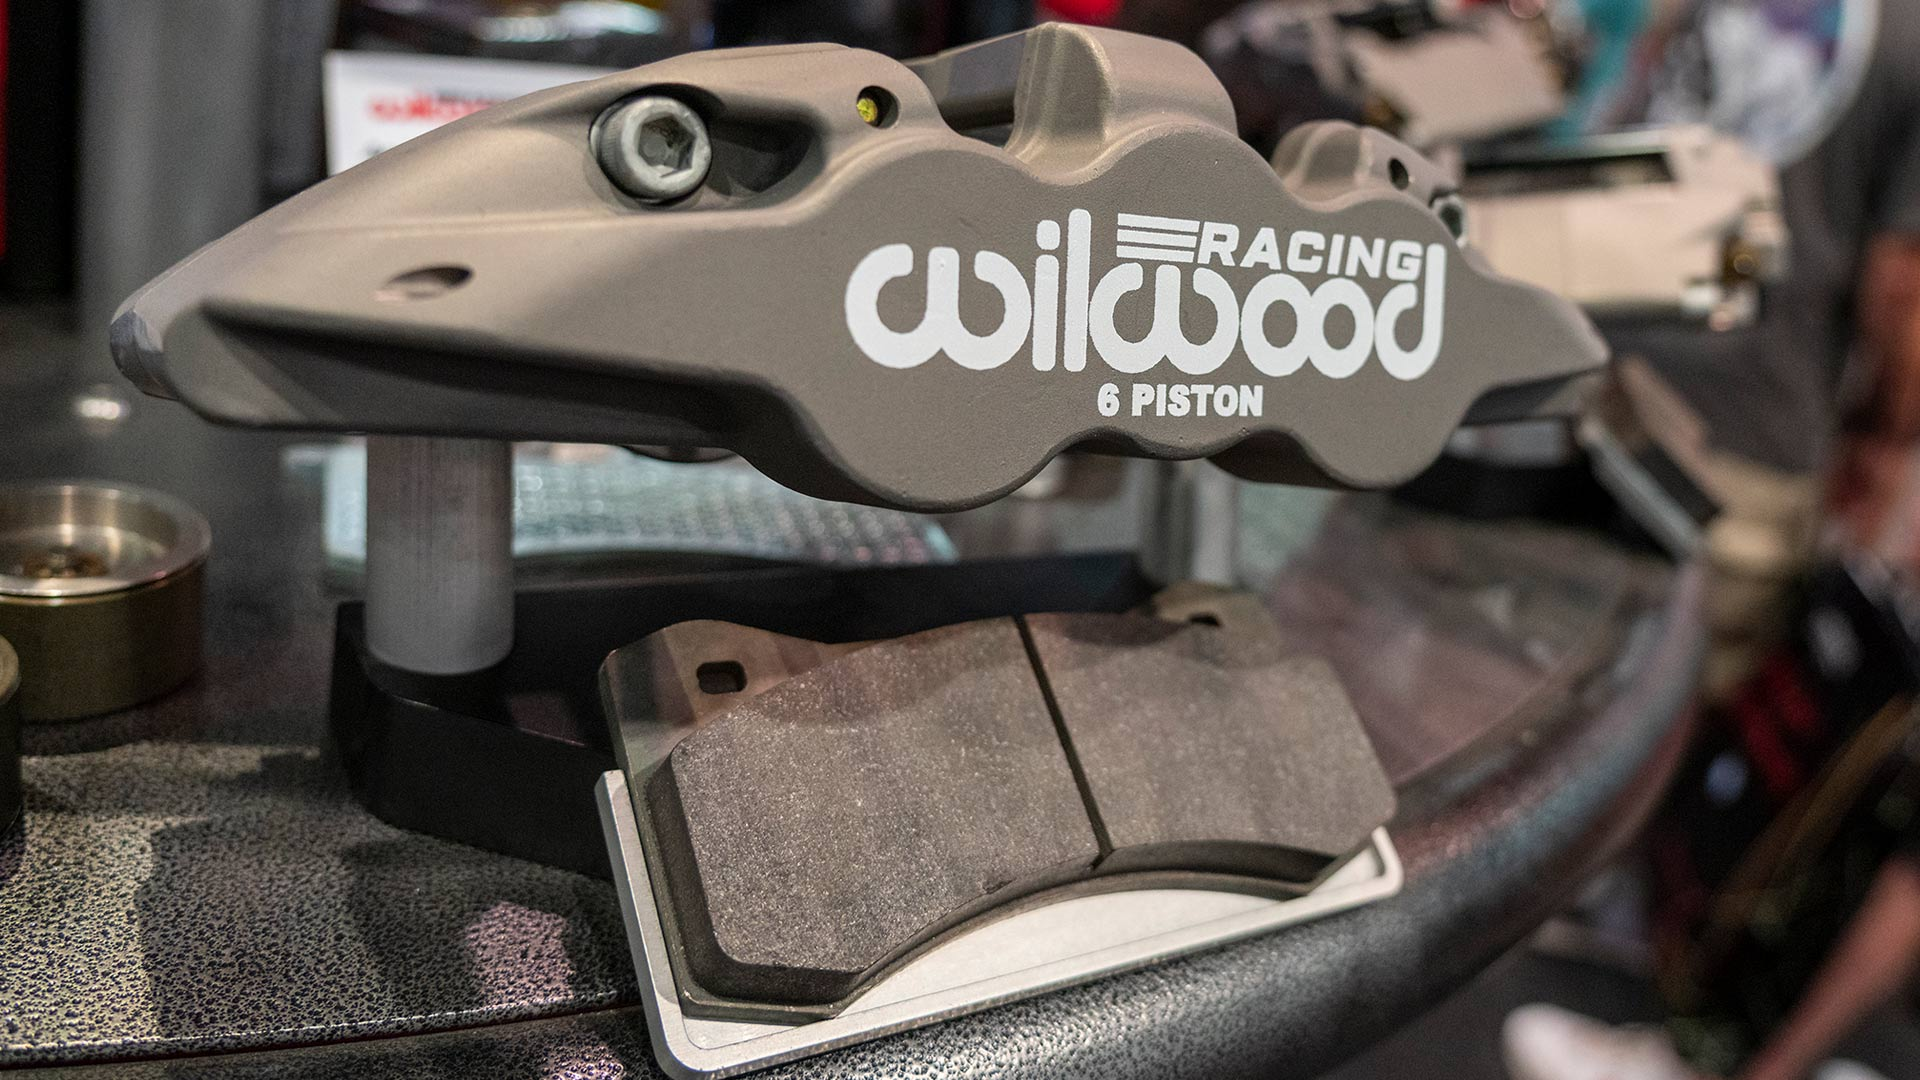 New Wilwood type-III anodize racing caliper on display at SEMA show 2019